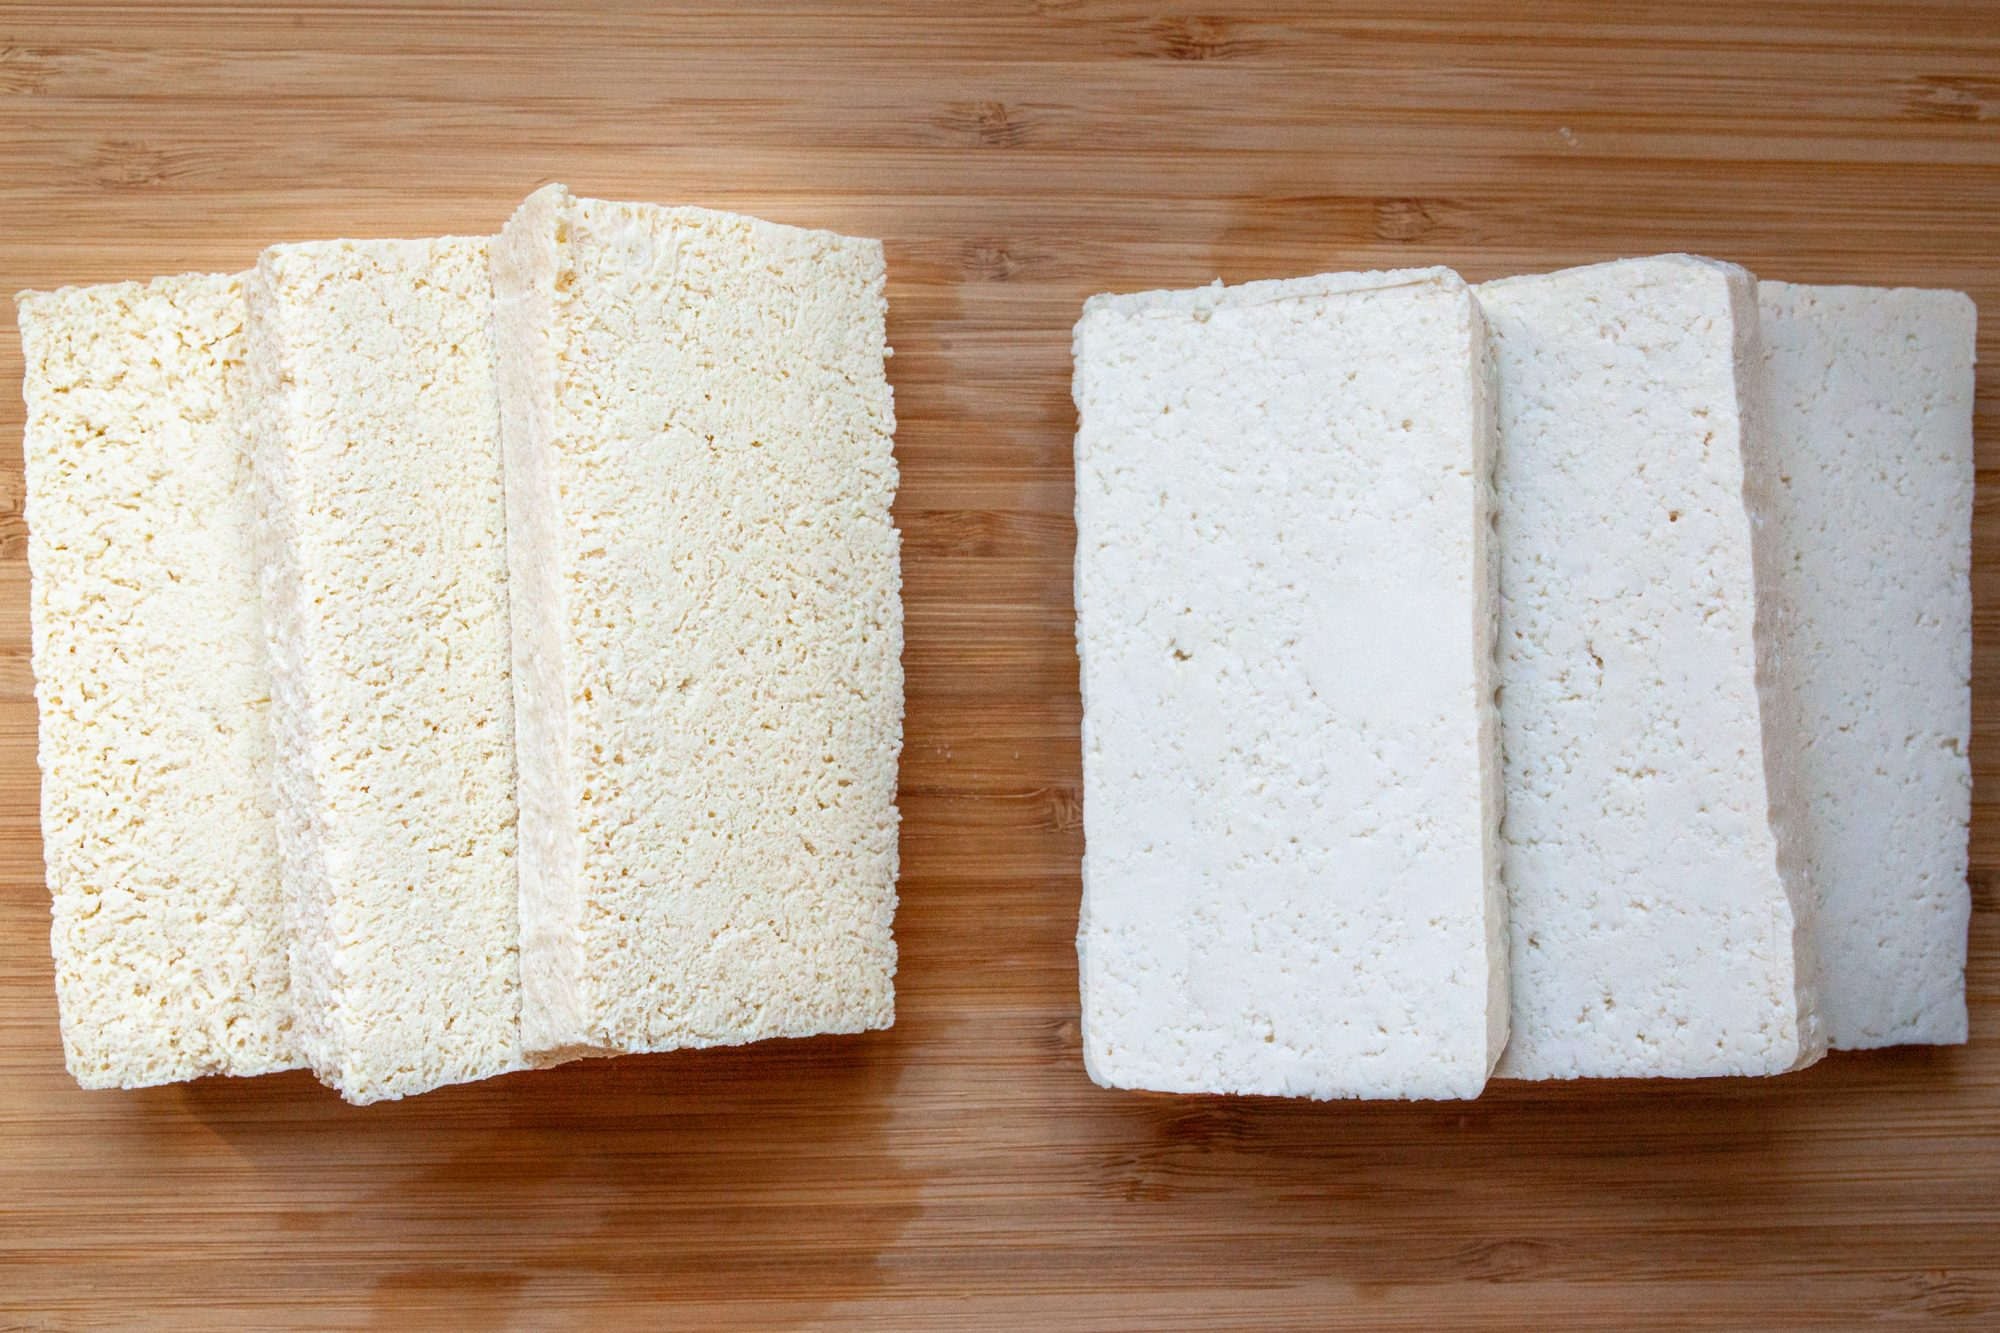 slices of tofu on a wood cutting board